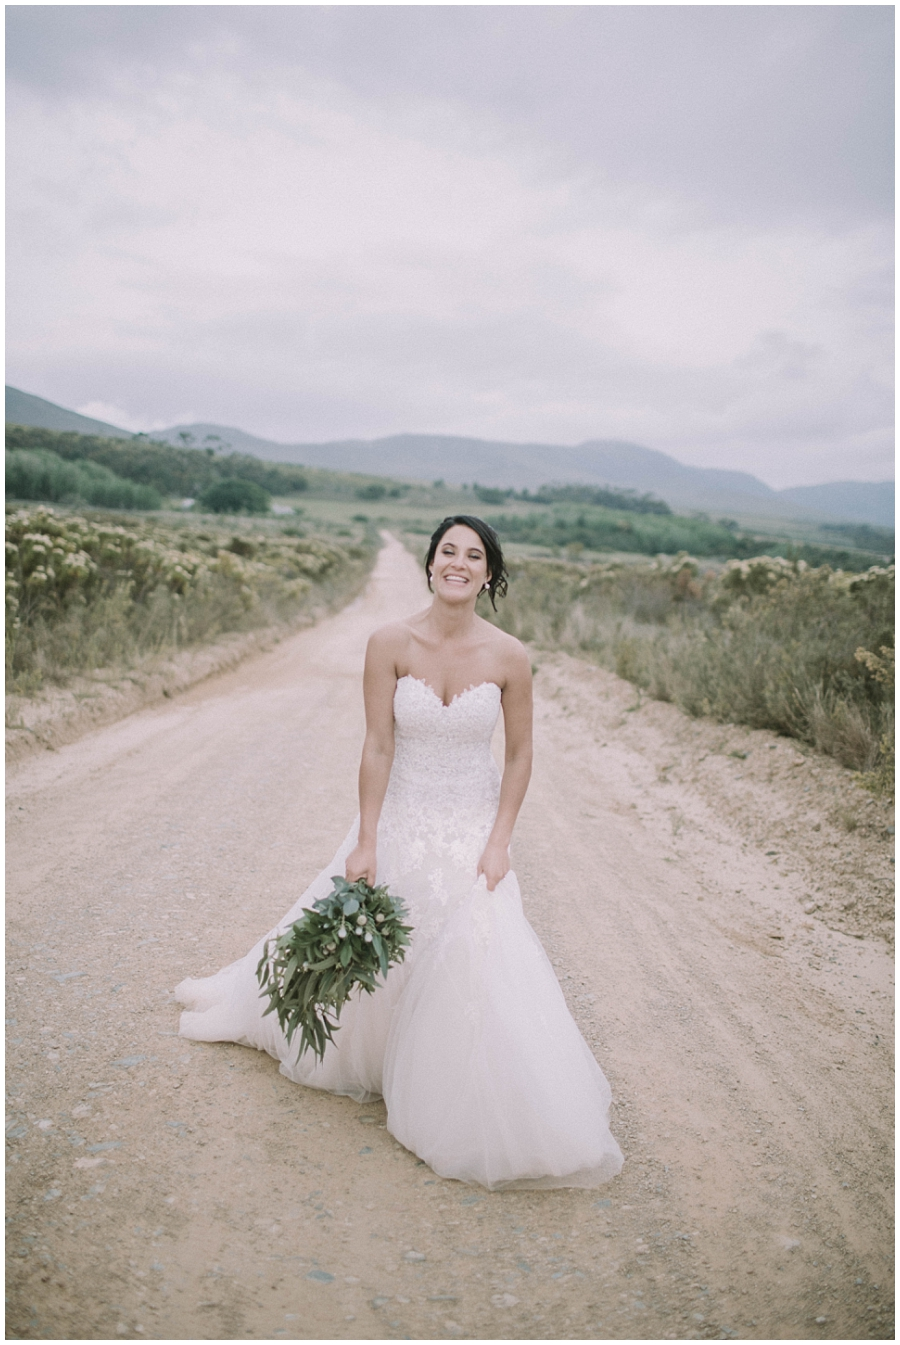 Ronel Kruger Cape Town Wedding and Lifestyle Photographer_4554.jpg